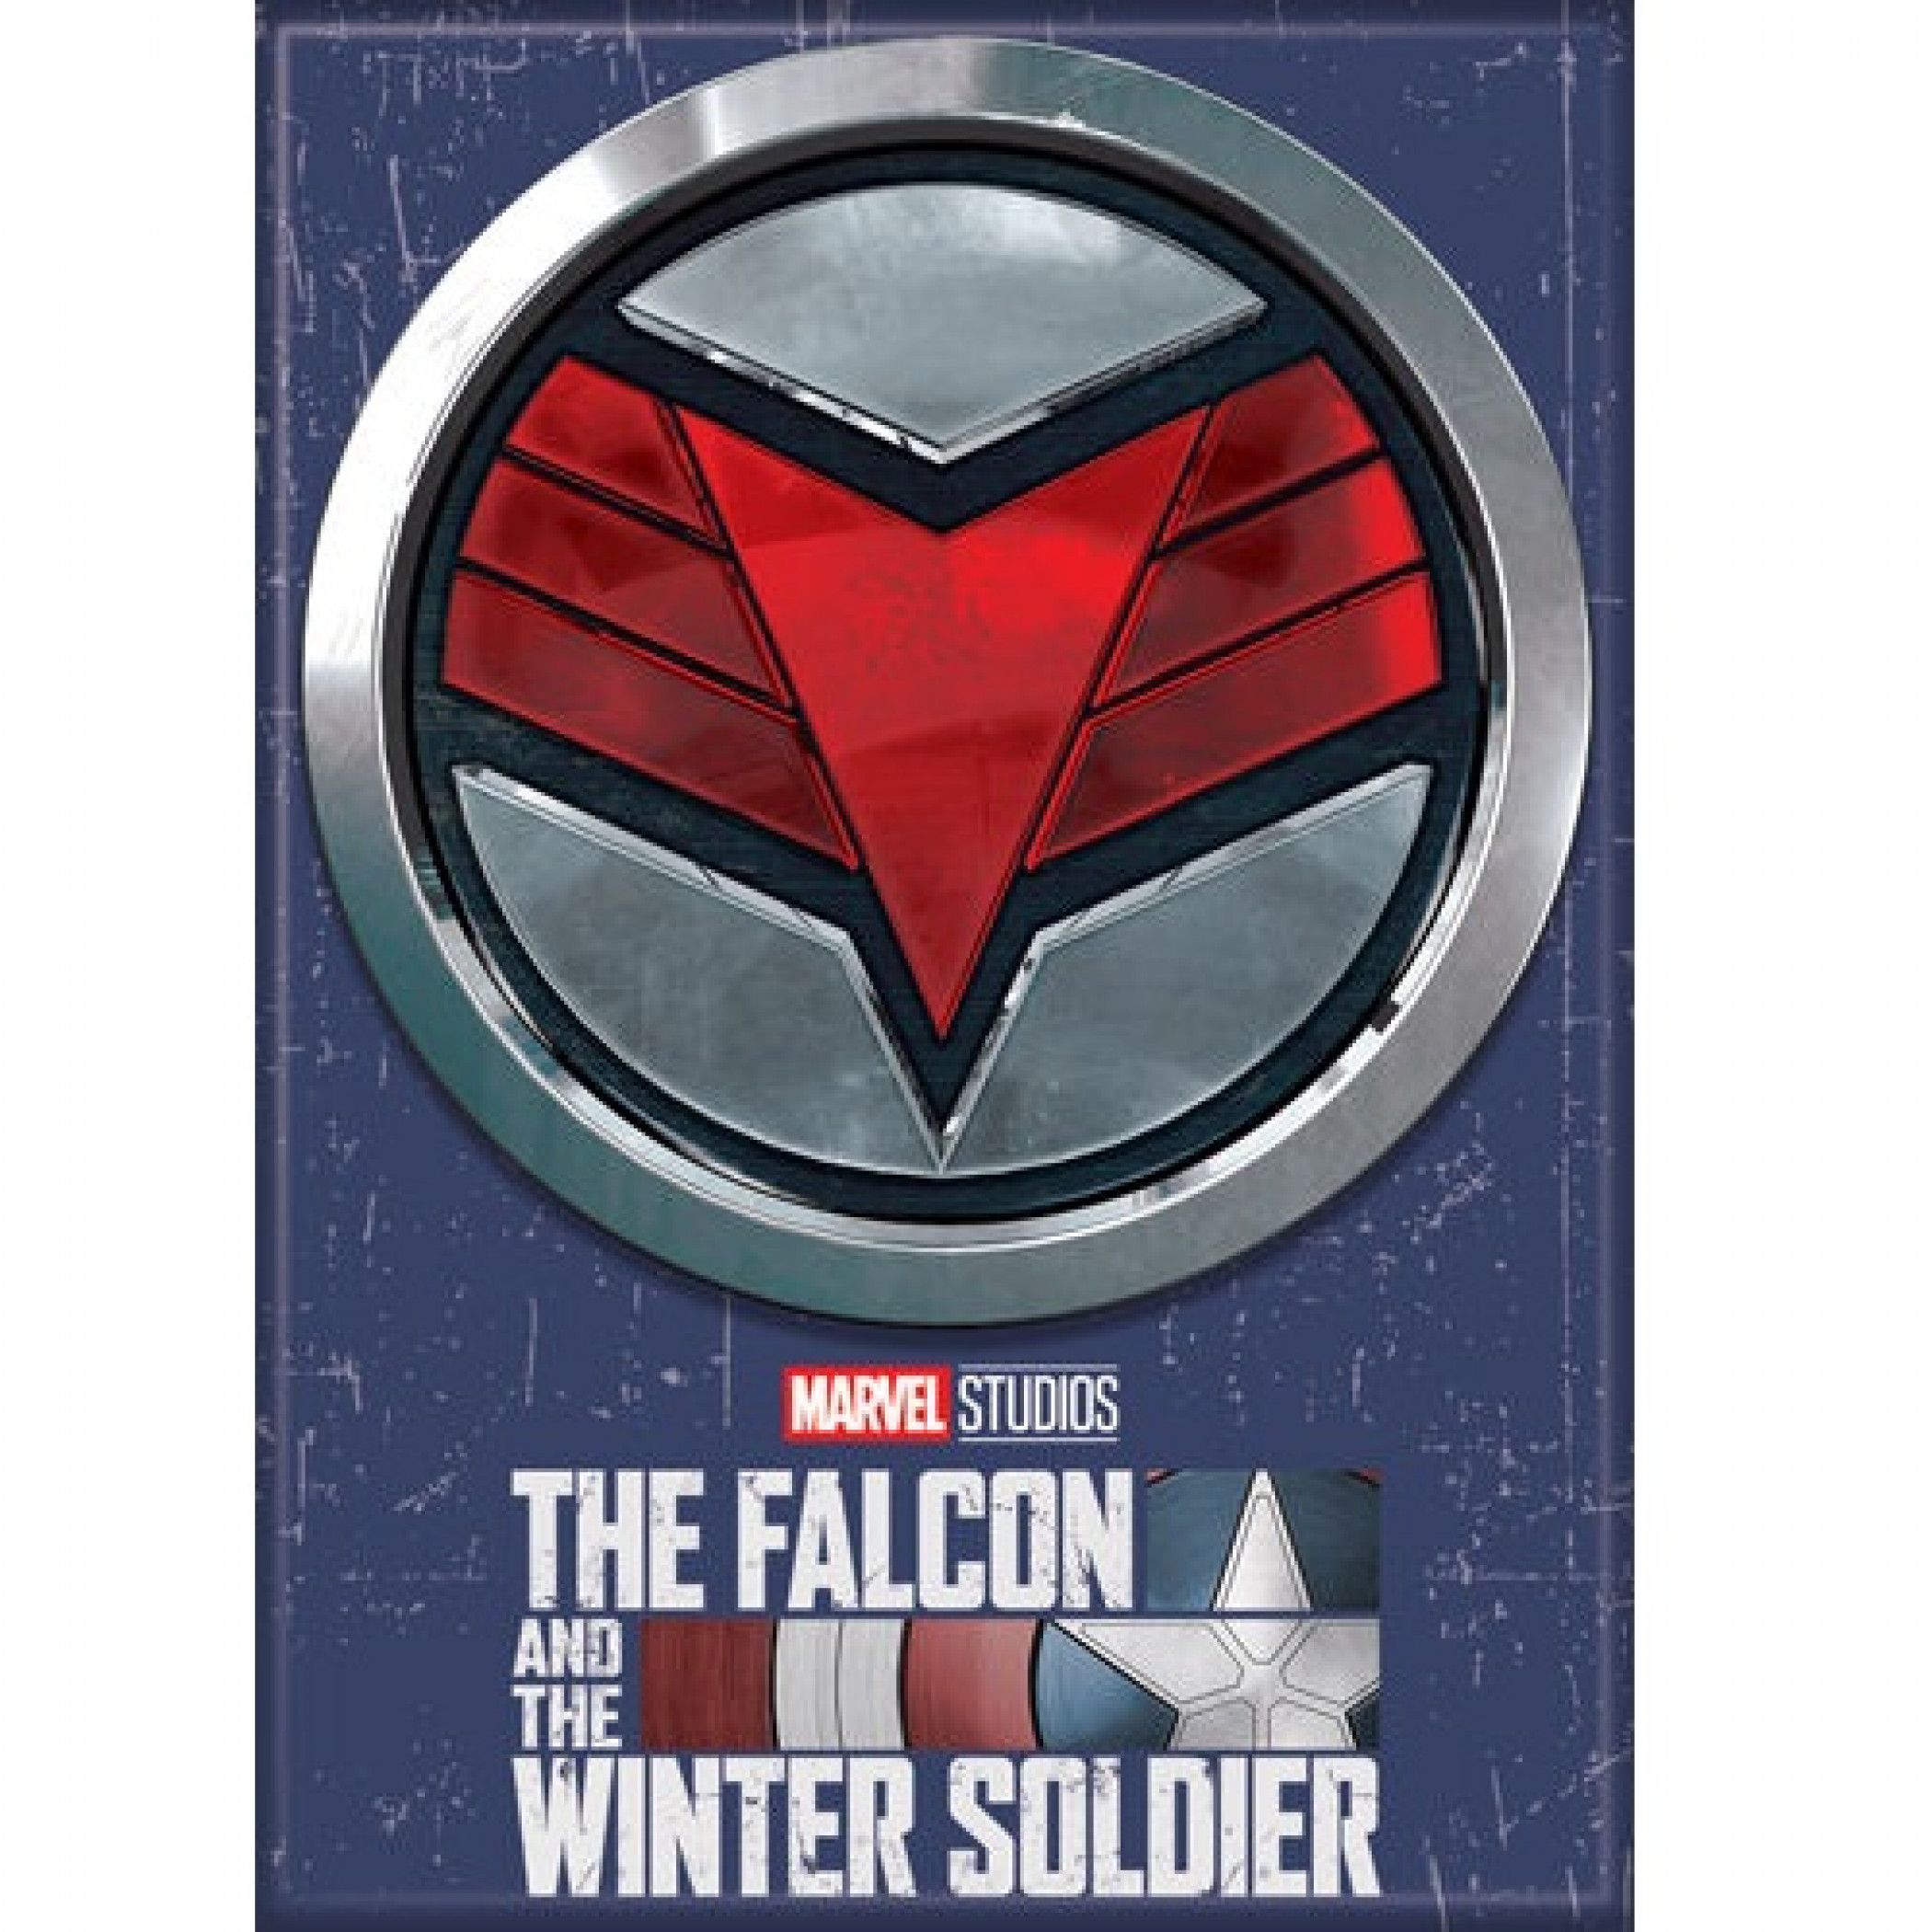 Falcon Symbol From The Falcon and The Winter Soldier Series Magnet